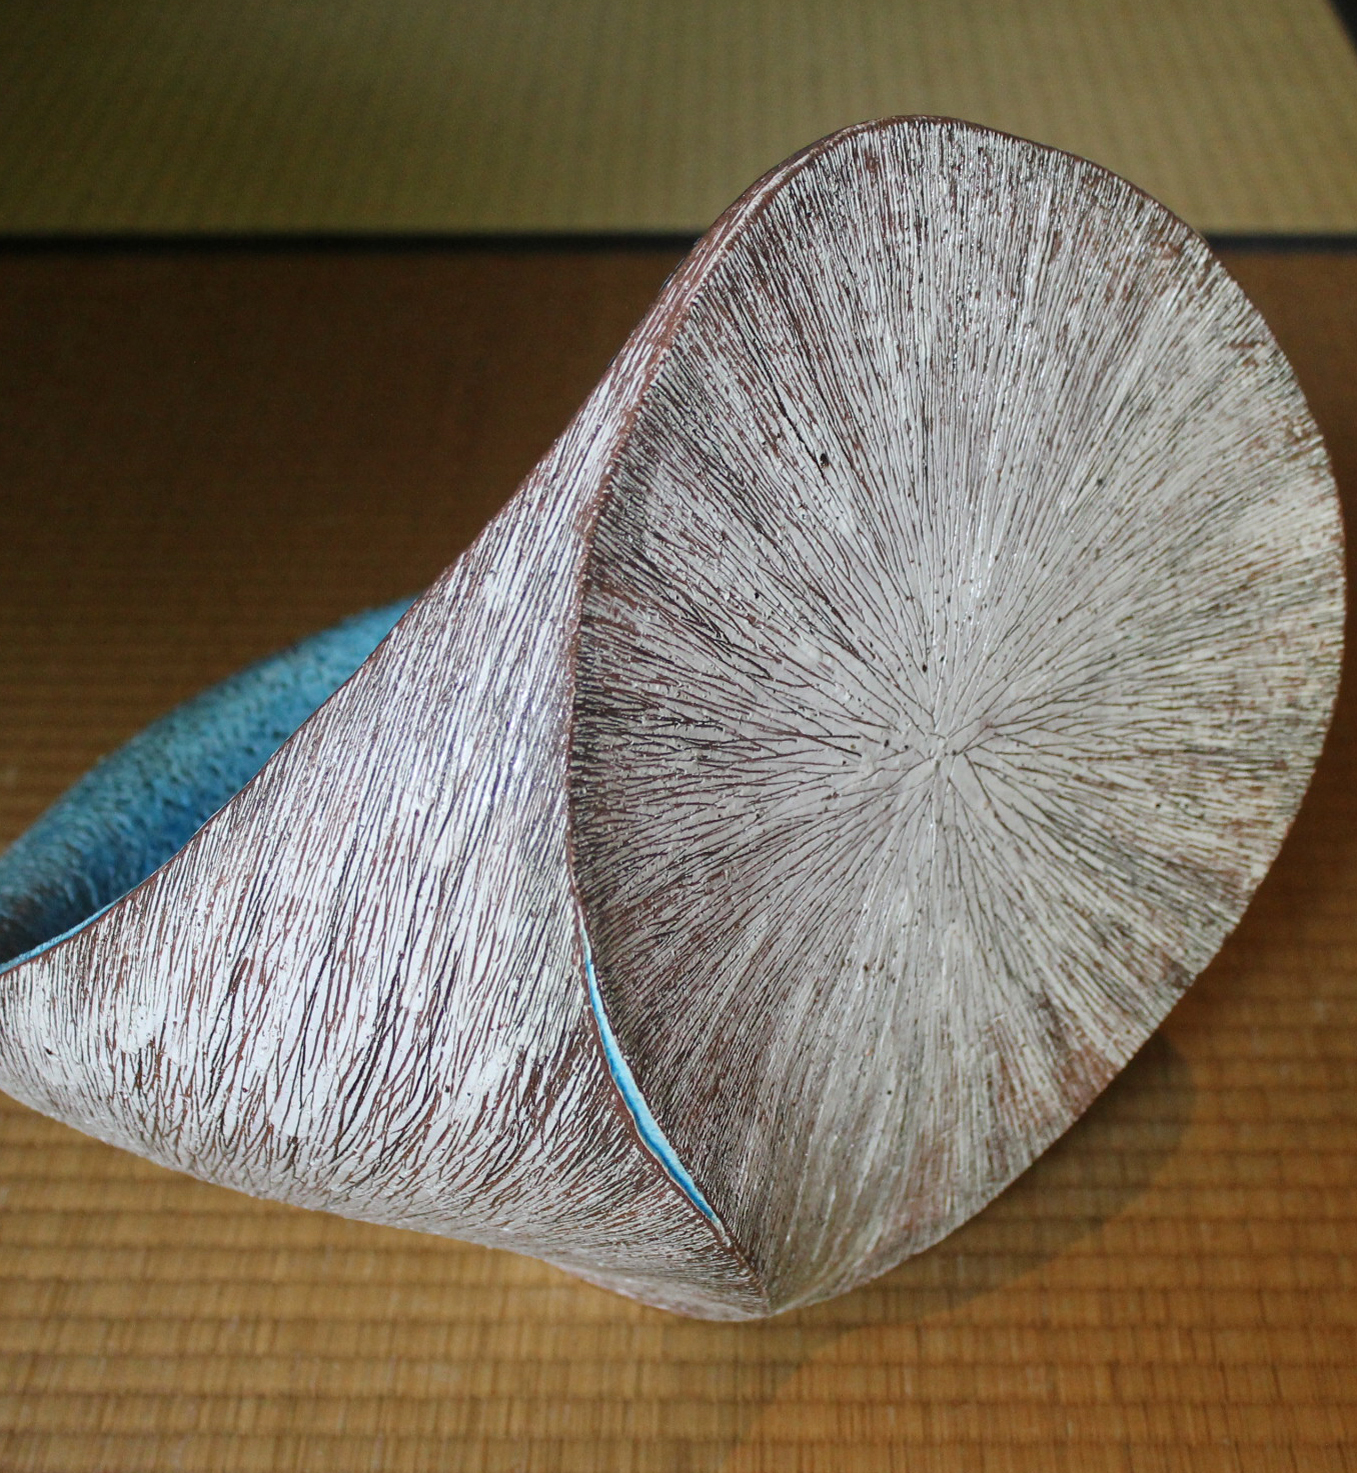 Shell Form by Tanoue Shinya